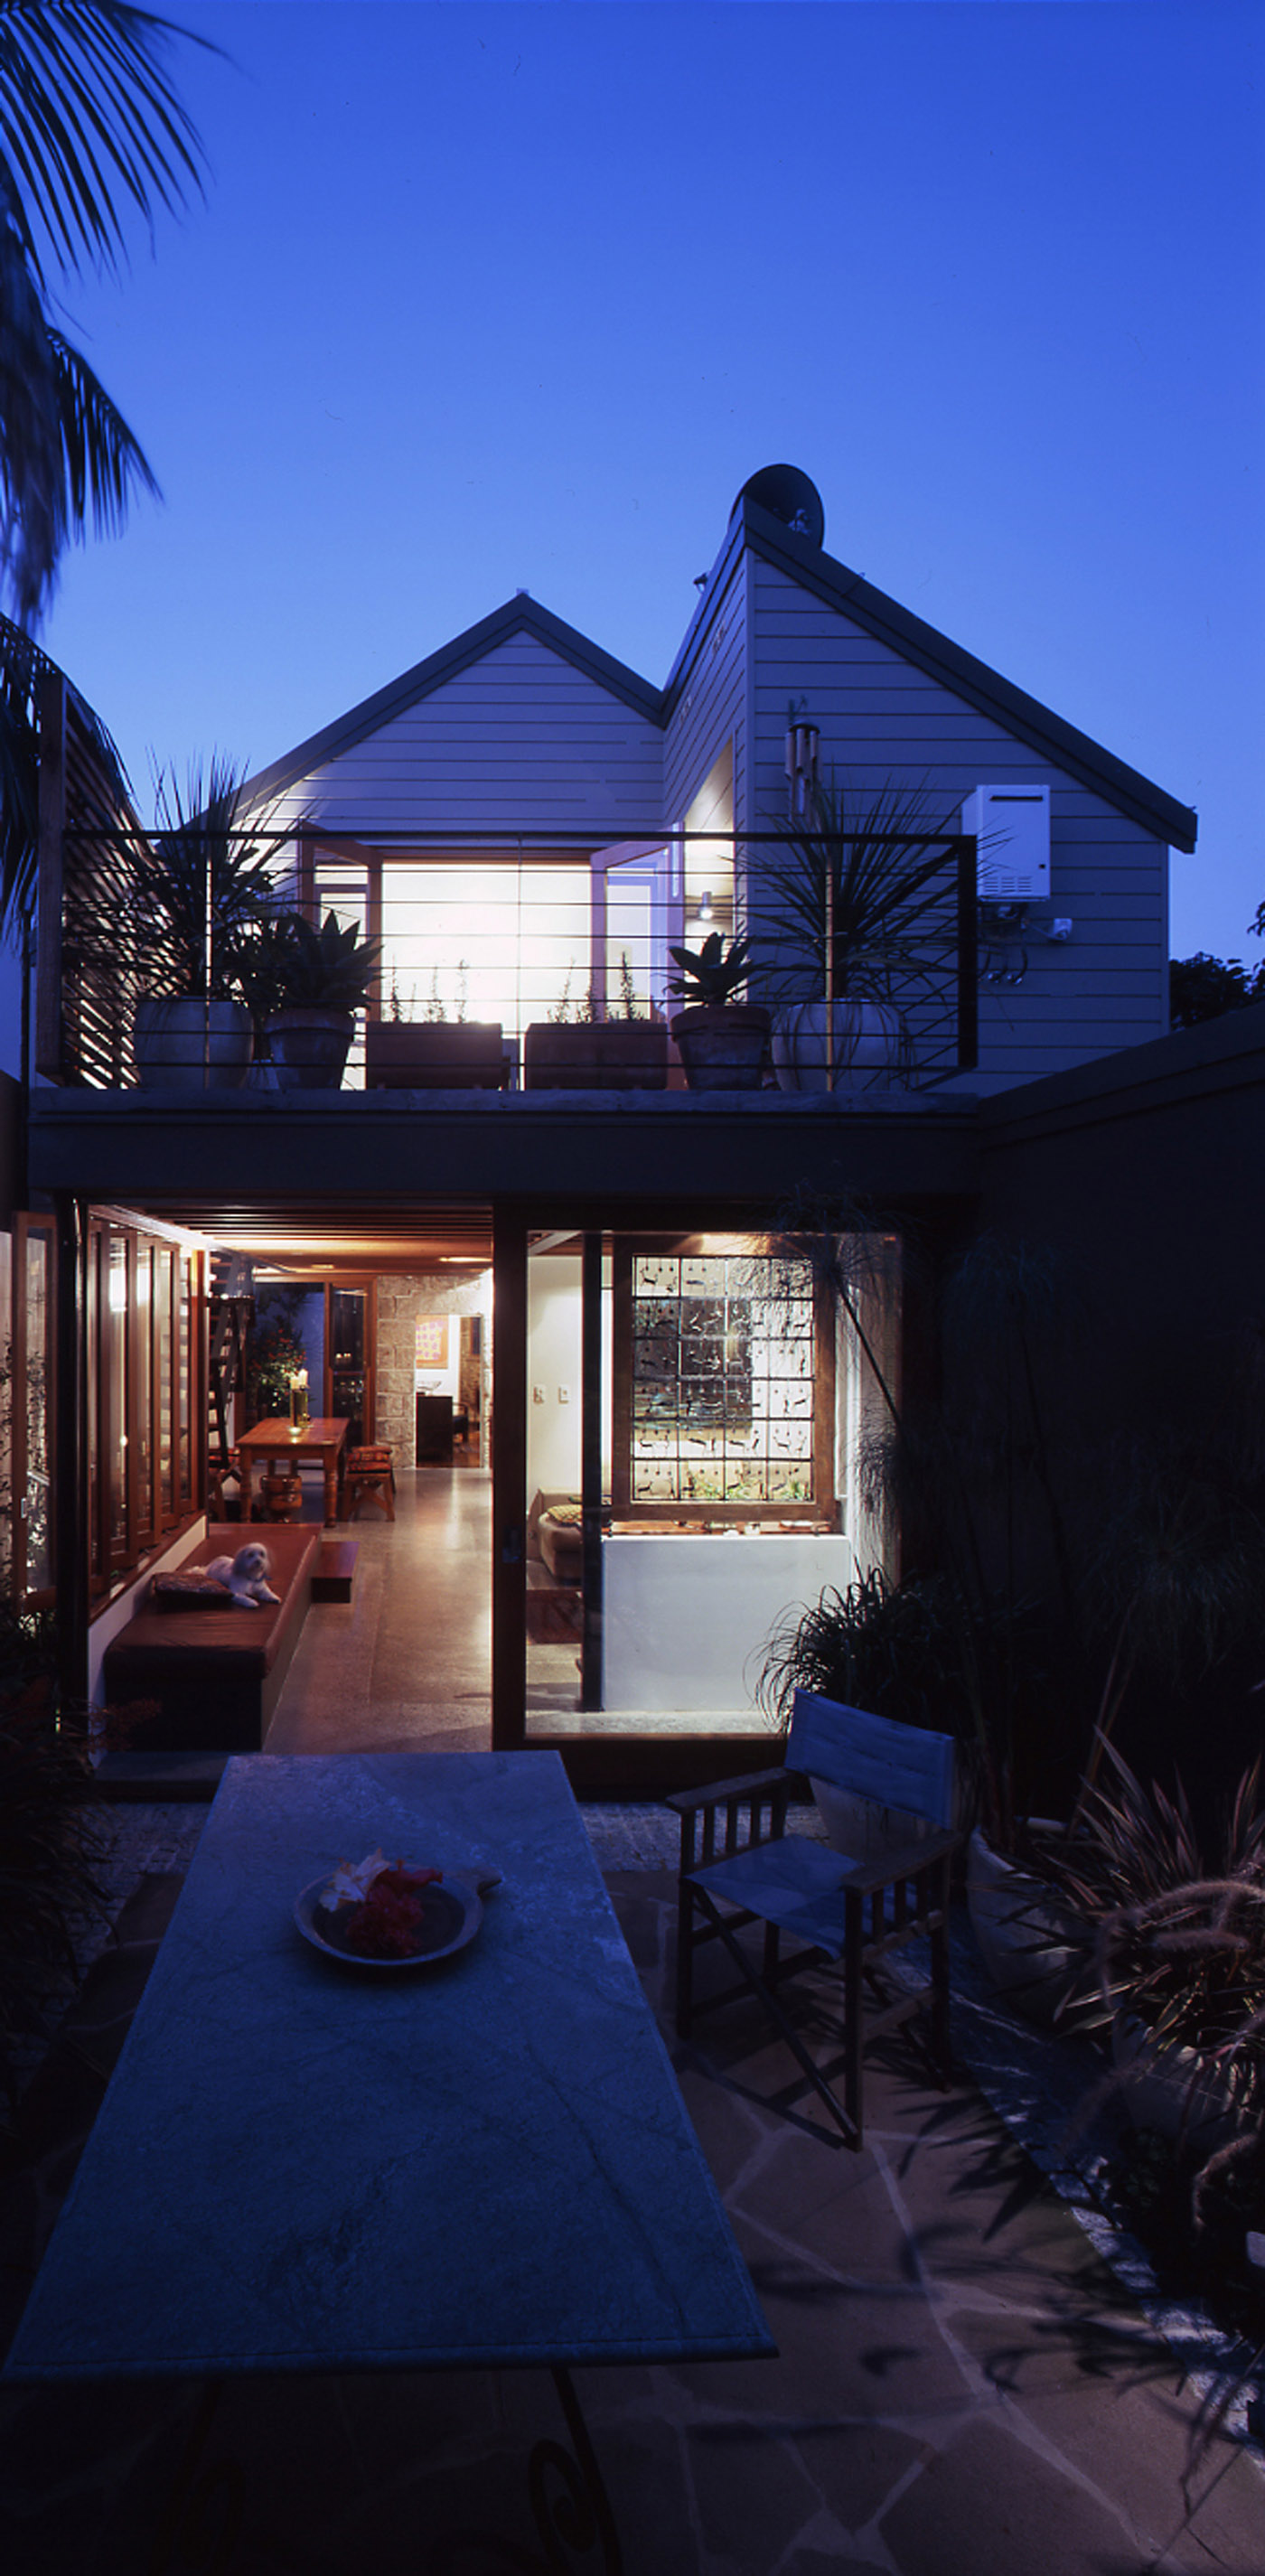 Bandi Drew House by Sydney award winning residential architecture firm Sam Crawford Architects. View from backyard at twilight